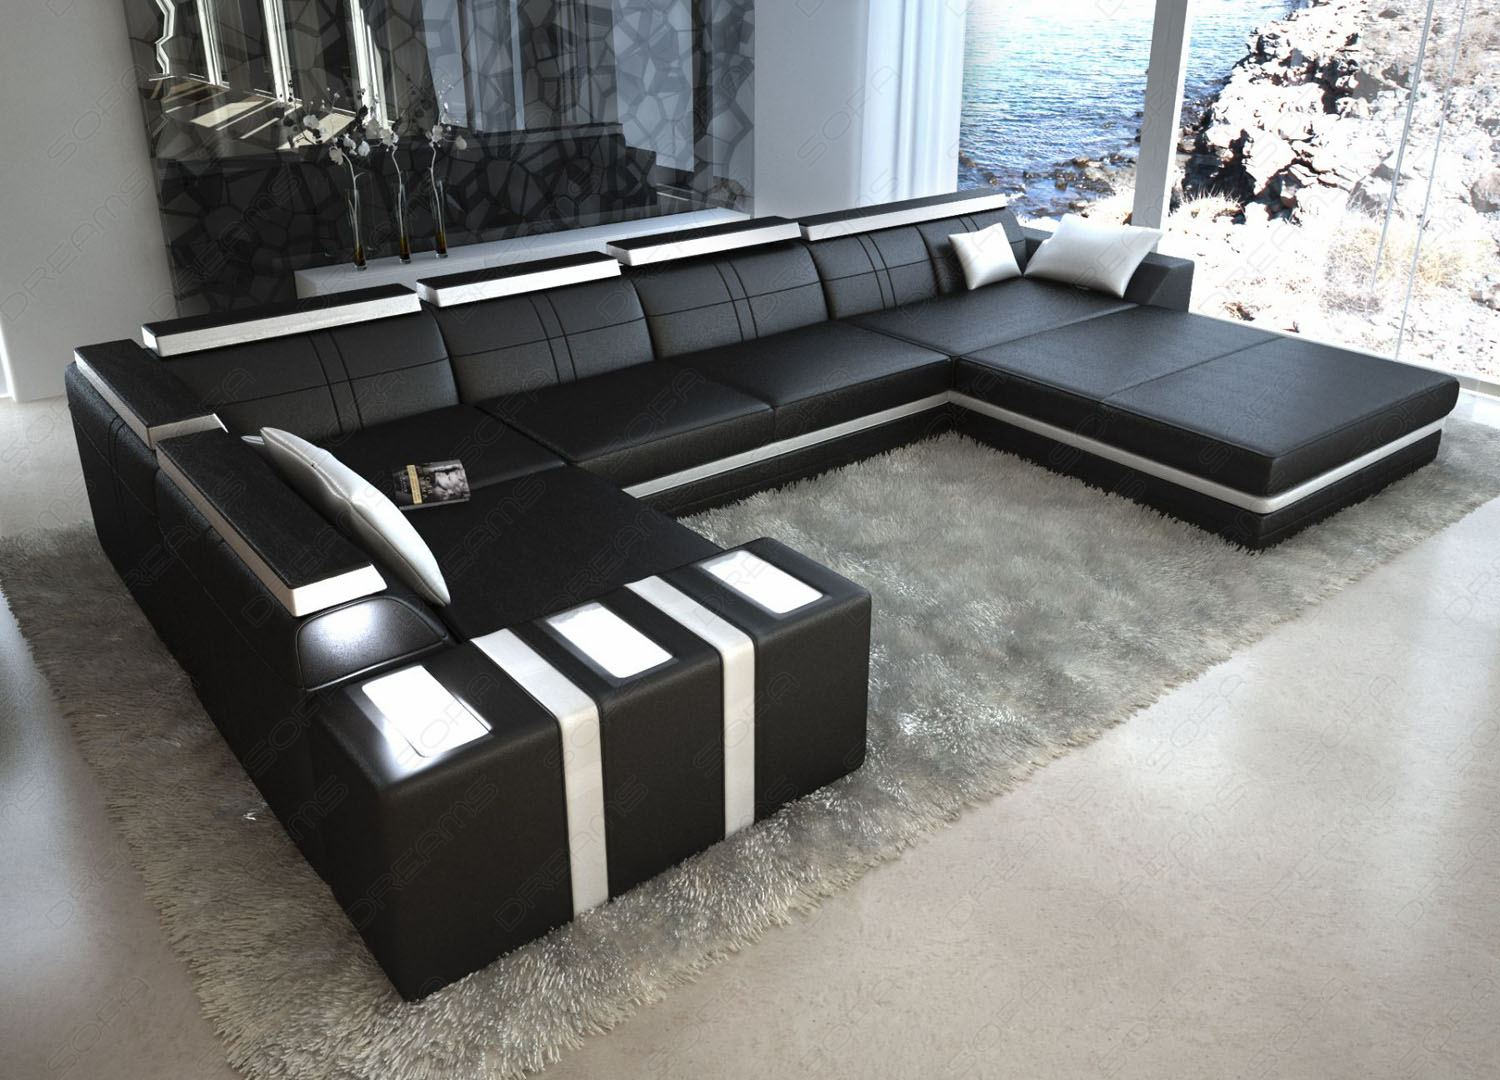 ecksofa federkern inspirierendes design f r wohnm bel. Black Bedroom Furniture Sets. Home Design Ideas